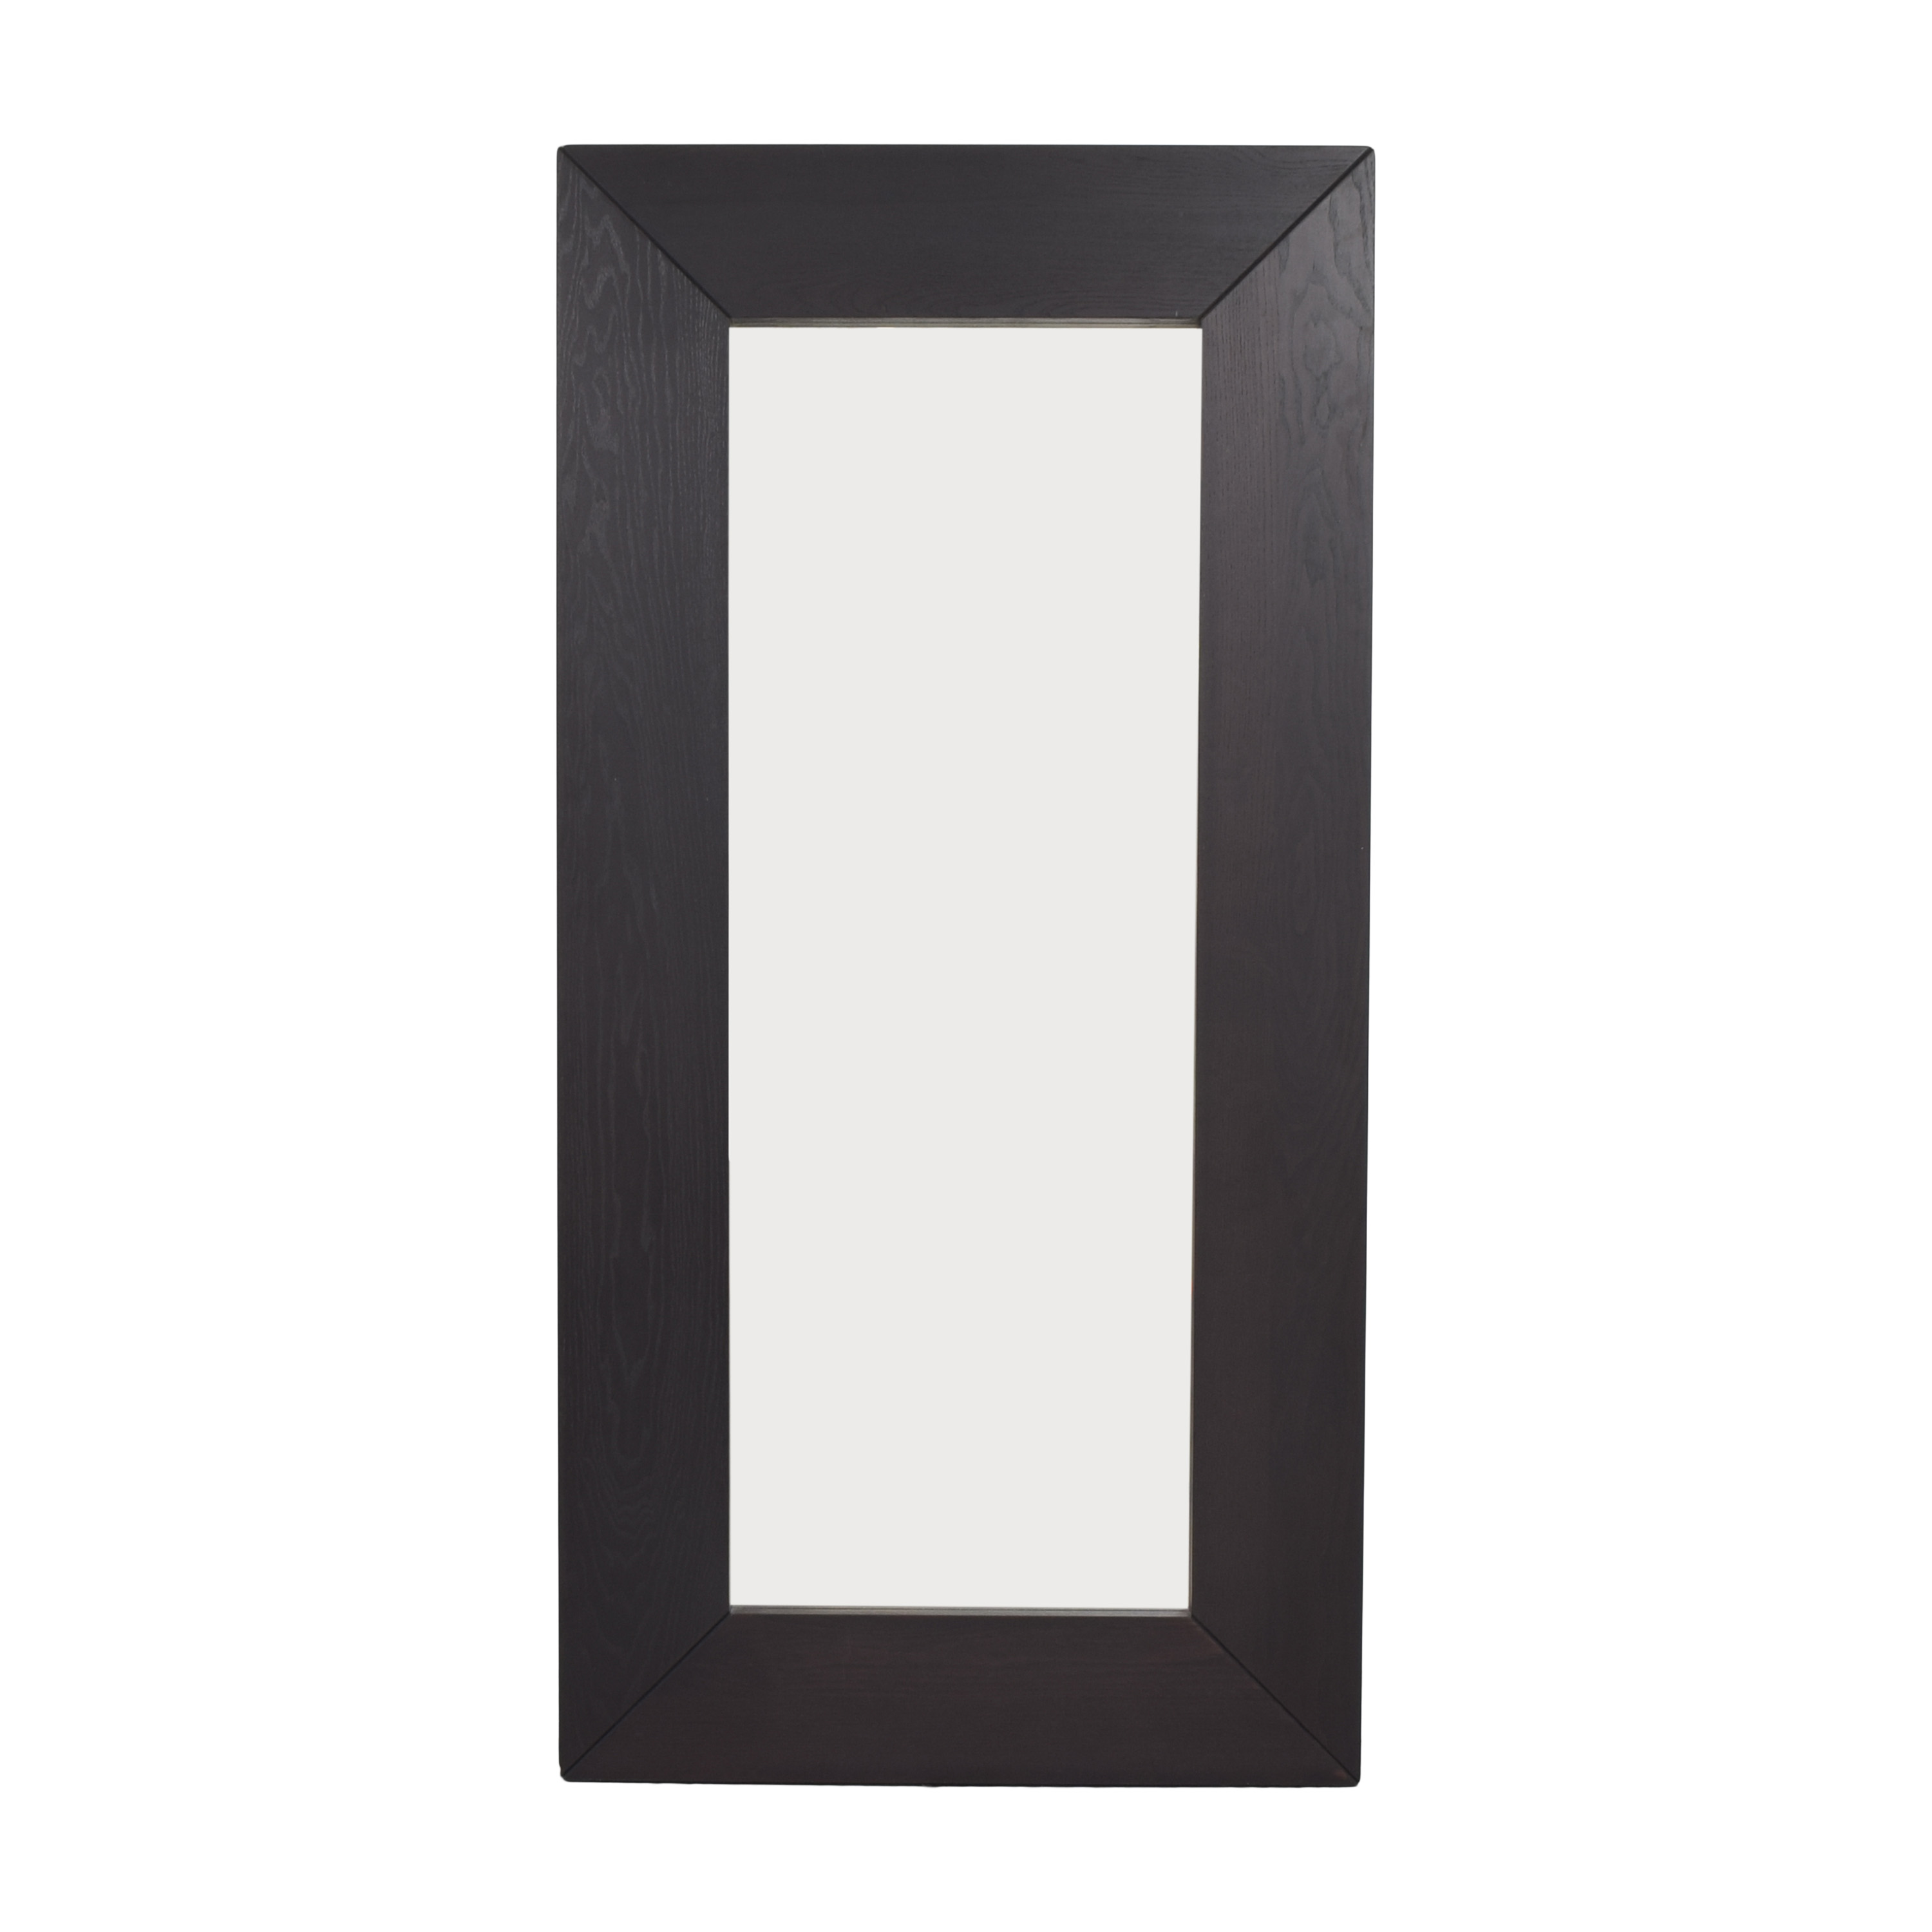 West Elm West Elm Framed Full Length Mirror on sale